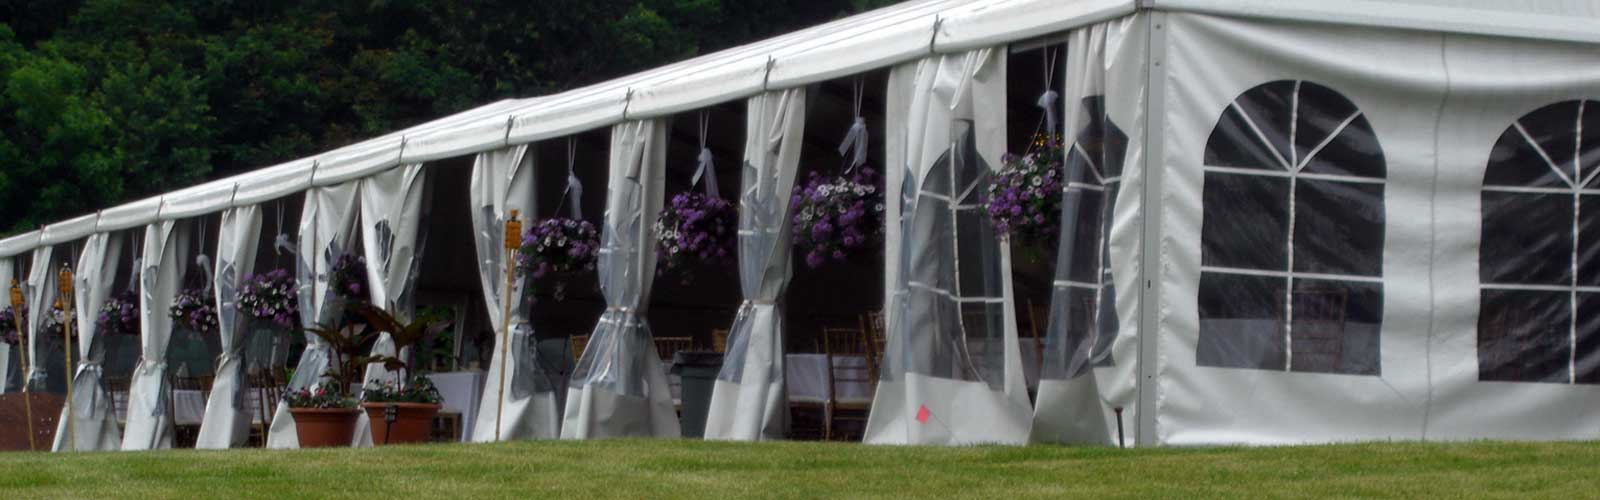 Party rentals in Northeast Ohio